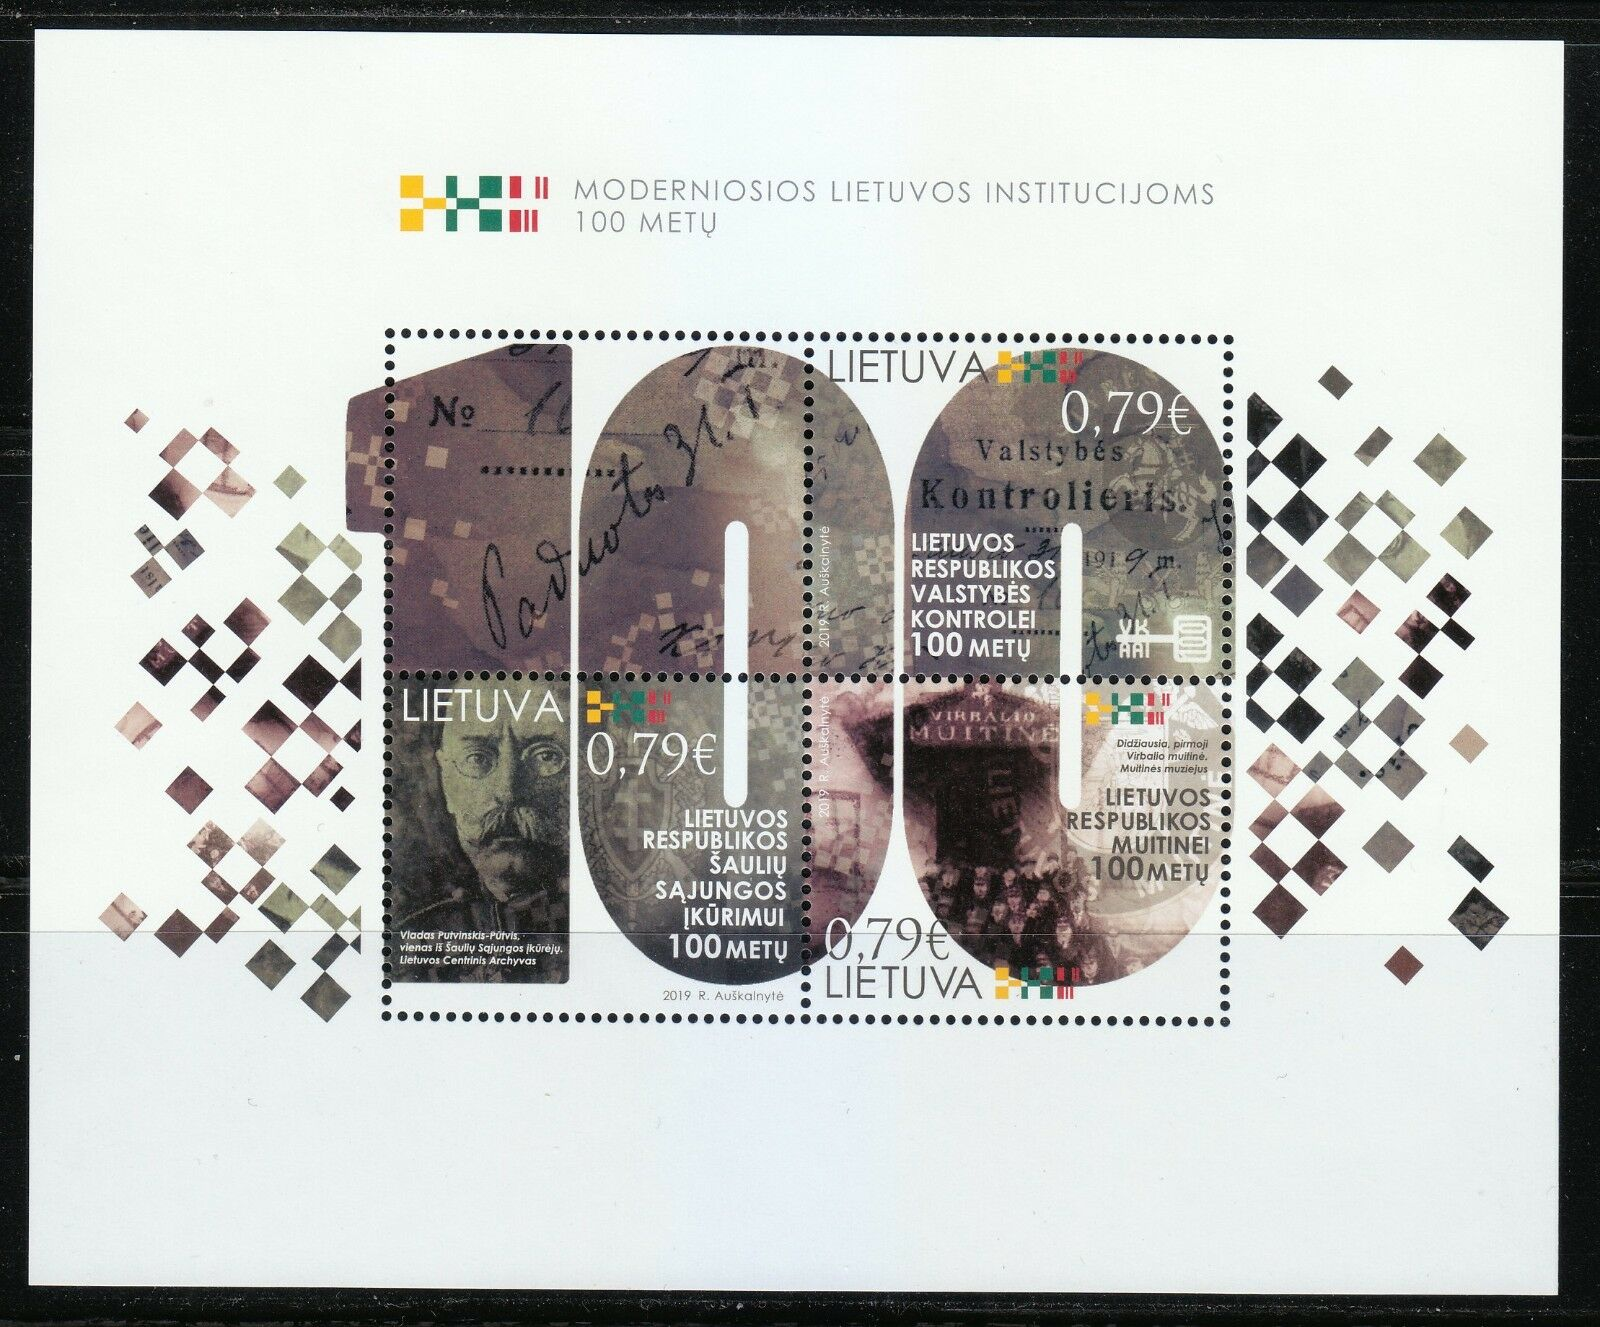 Lithuania - 100th Anniversary of Modern Institutions (January 14, 2019) souvenir sheet of 3 + label